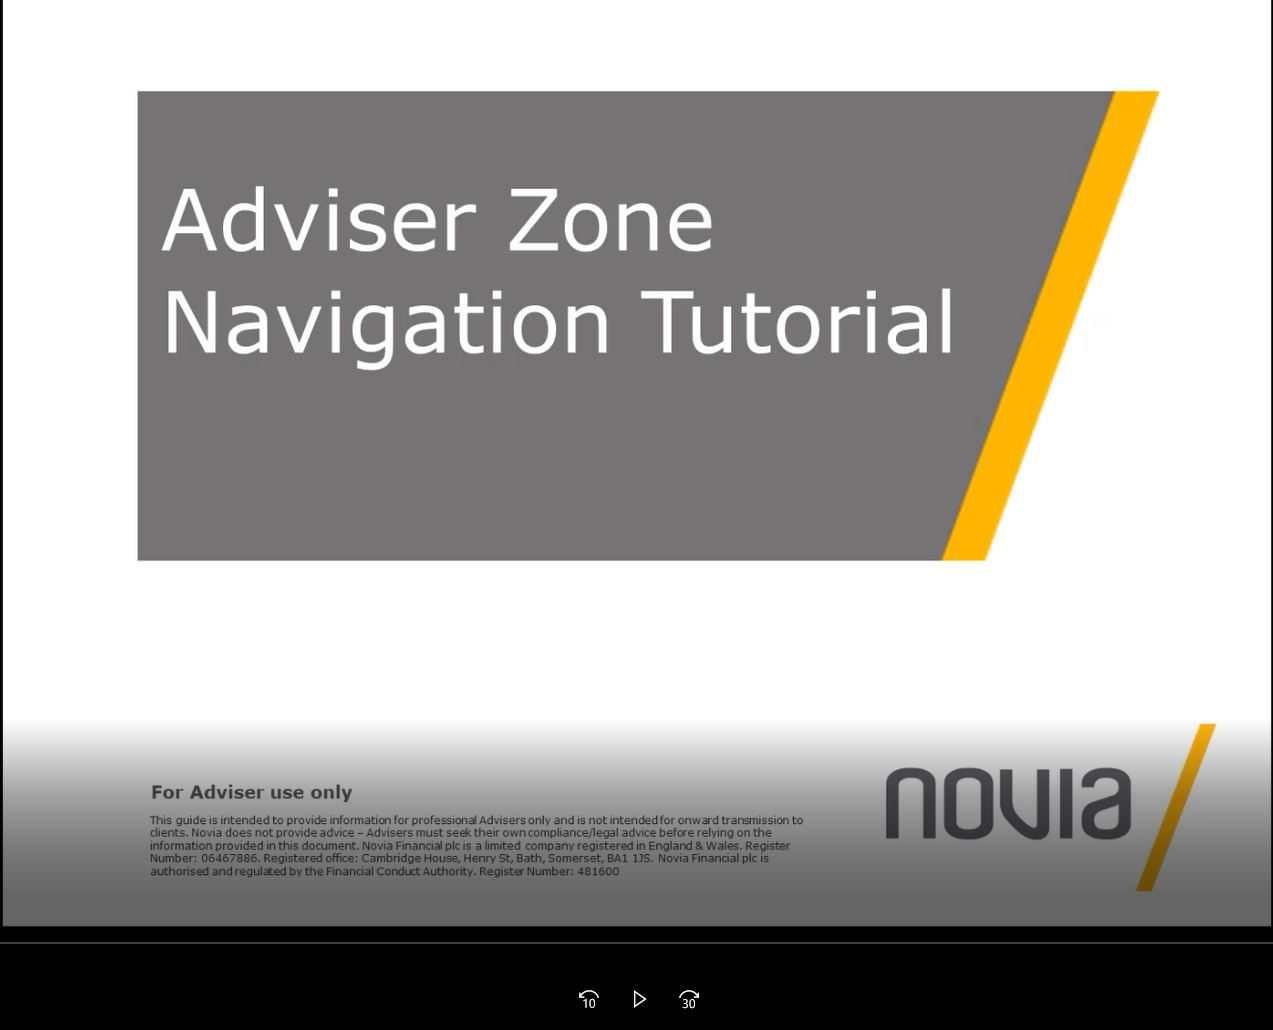 Adviser Zone Navigation